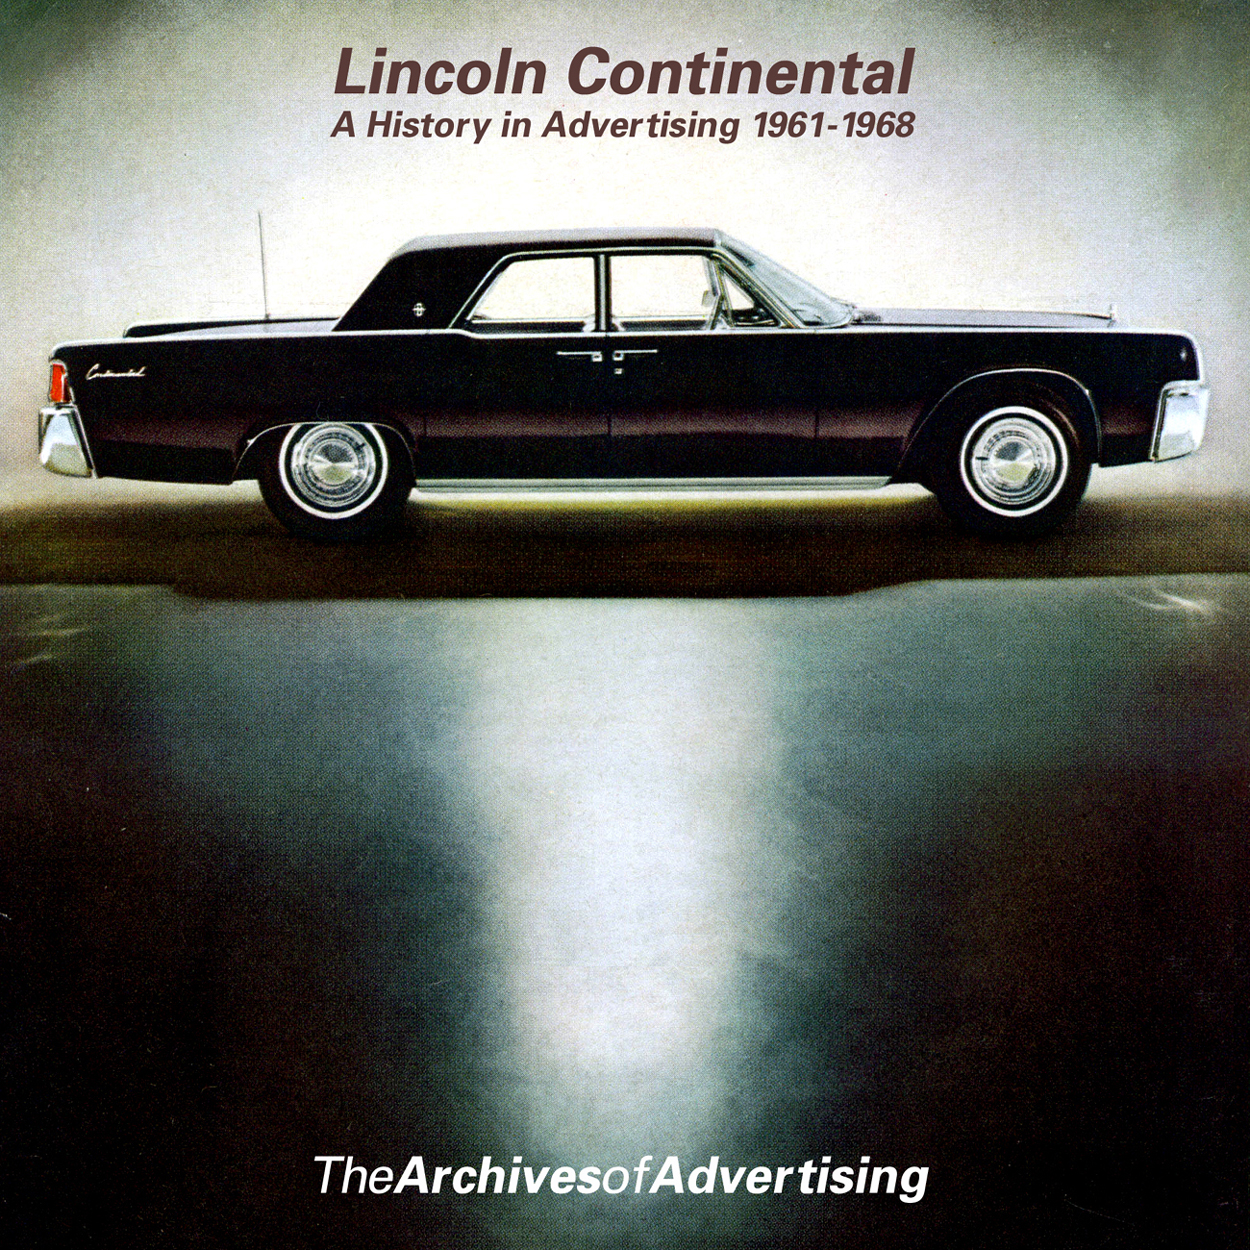 1961 1962 1963 1964 1965 1966 1967 1968 Lincoln ad CD-ROM: 130+ ads!